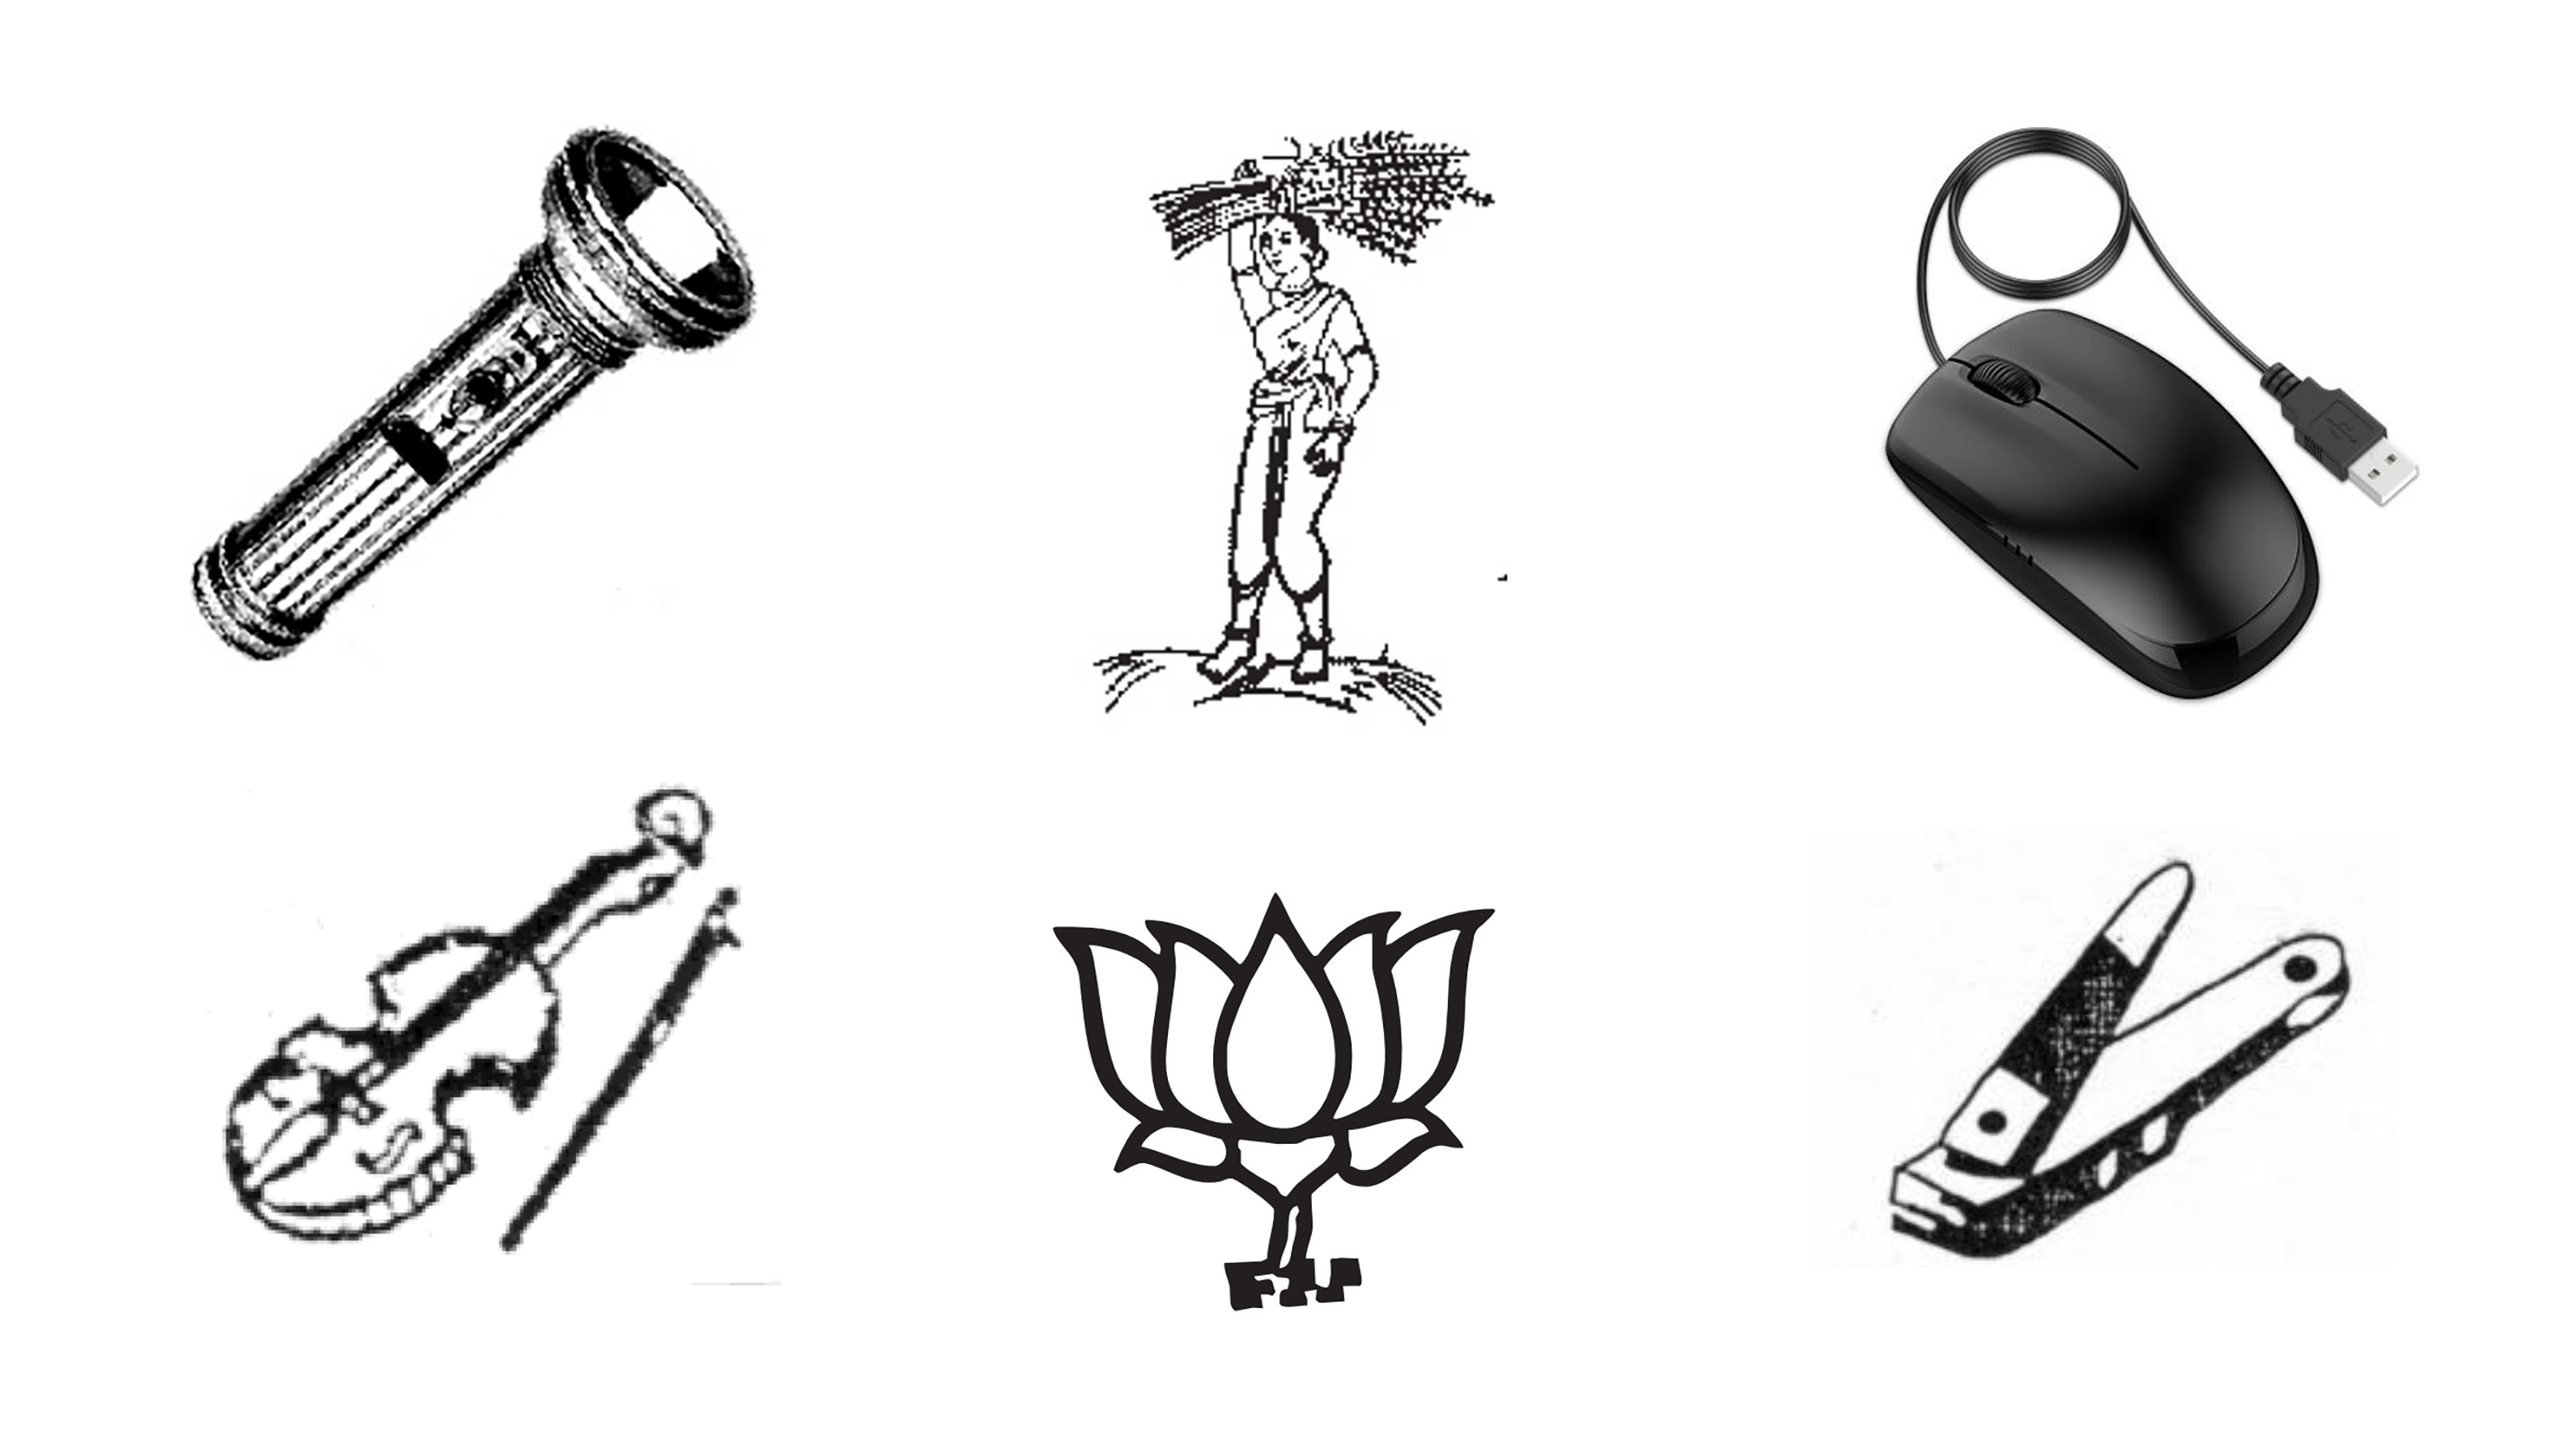 India's Ballot Has Some Really Offbeat Symbols For Its Political Parties